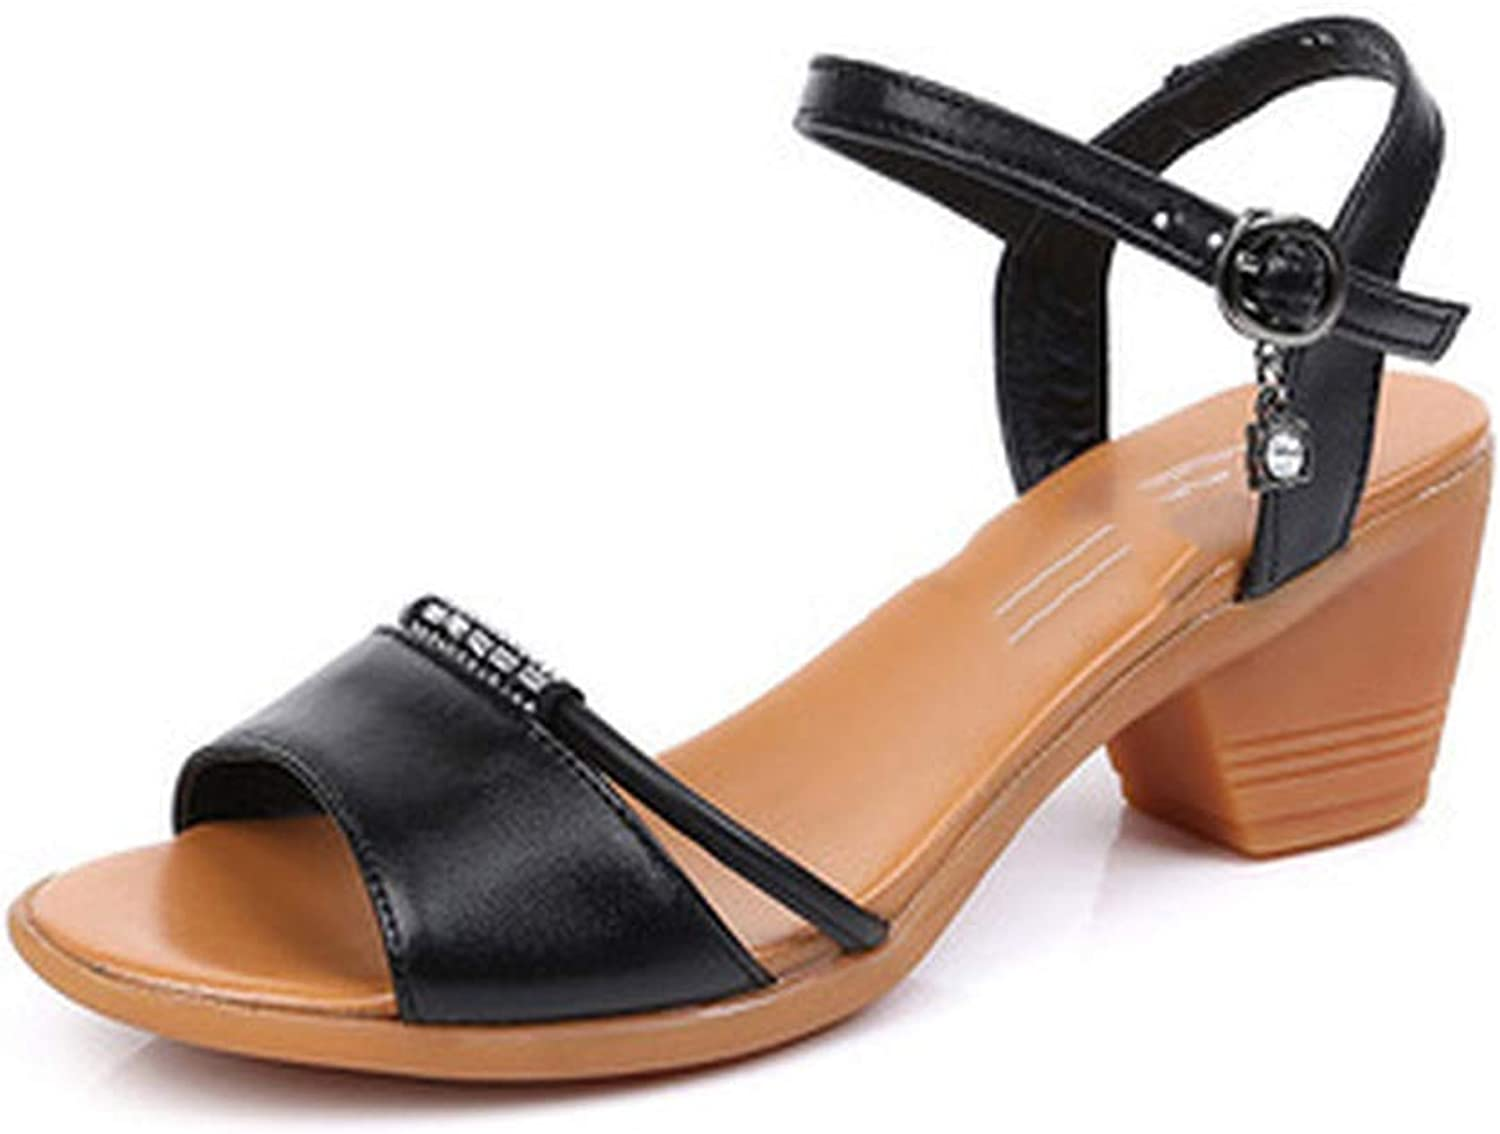 PREtty-2 Genuine Leather Sandals High Heels Buckle Strap Sandals for Women Summer Plus Size 35-42